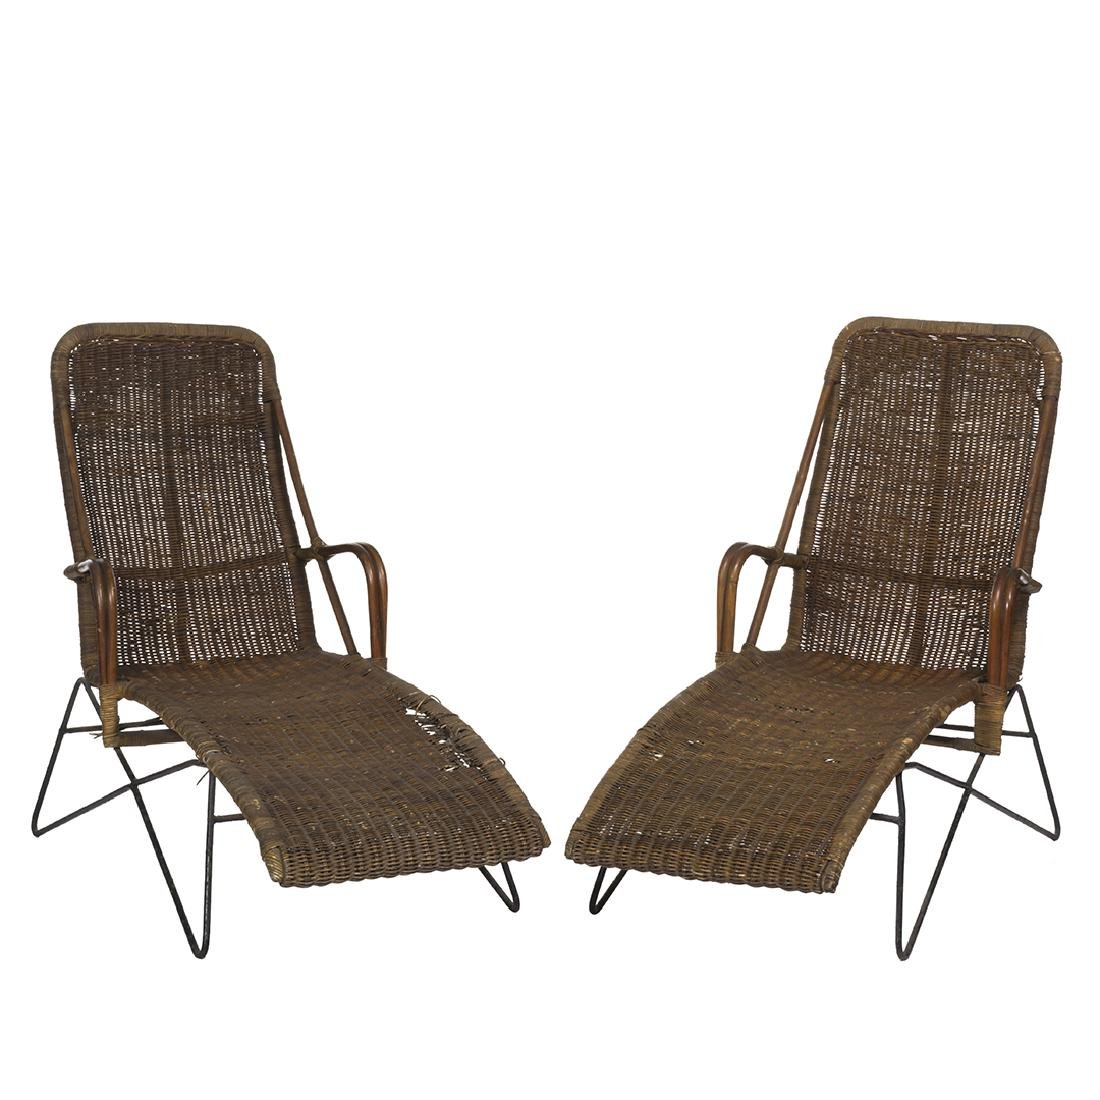 Raoul Guys Style Rattan and Iron Chaise Lounges (2)